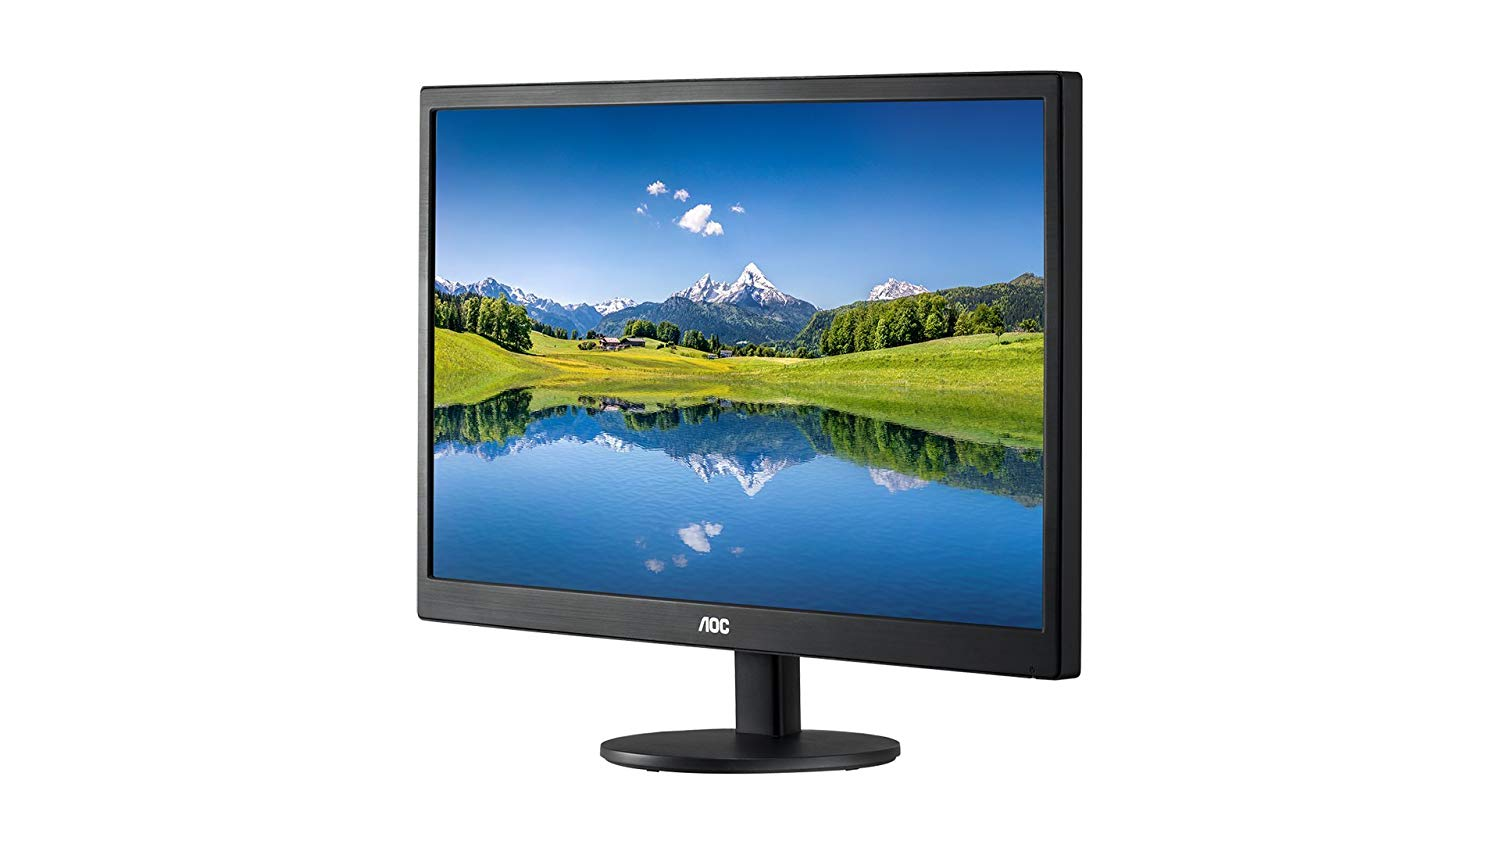 Monitor 21.5 Led E2270swhn Hdmi/vga Aoc